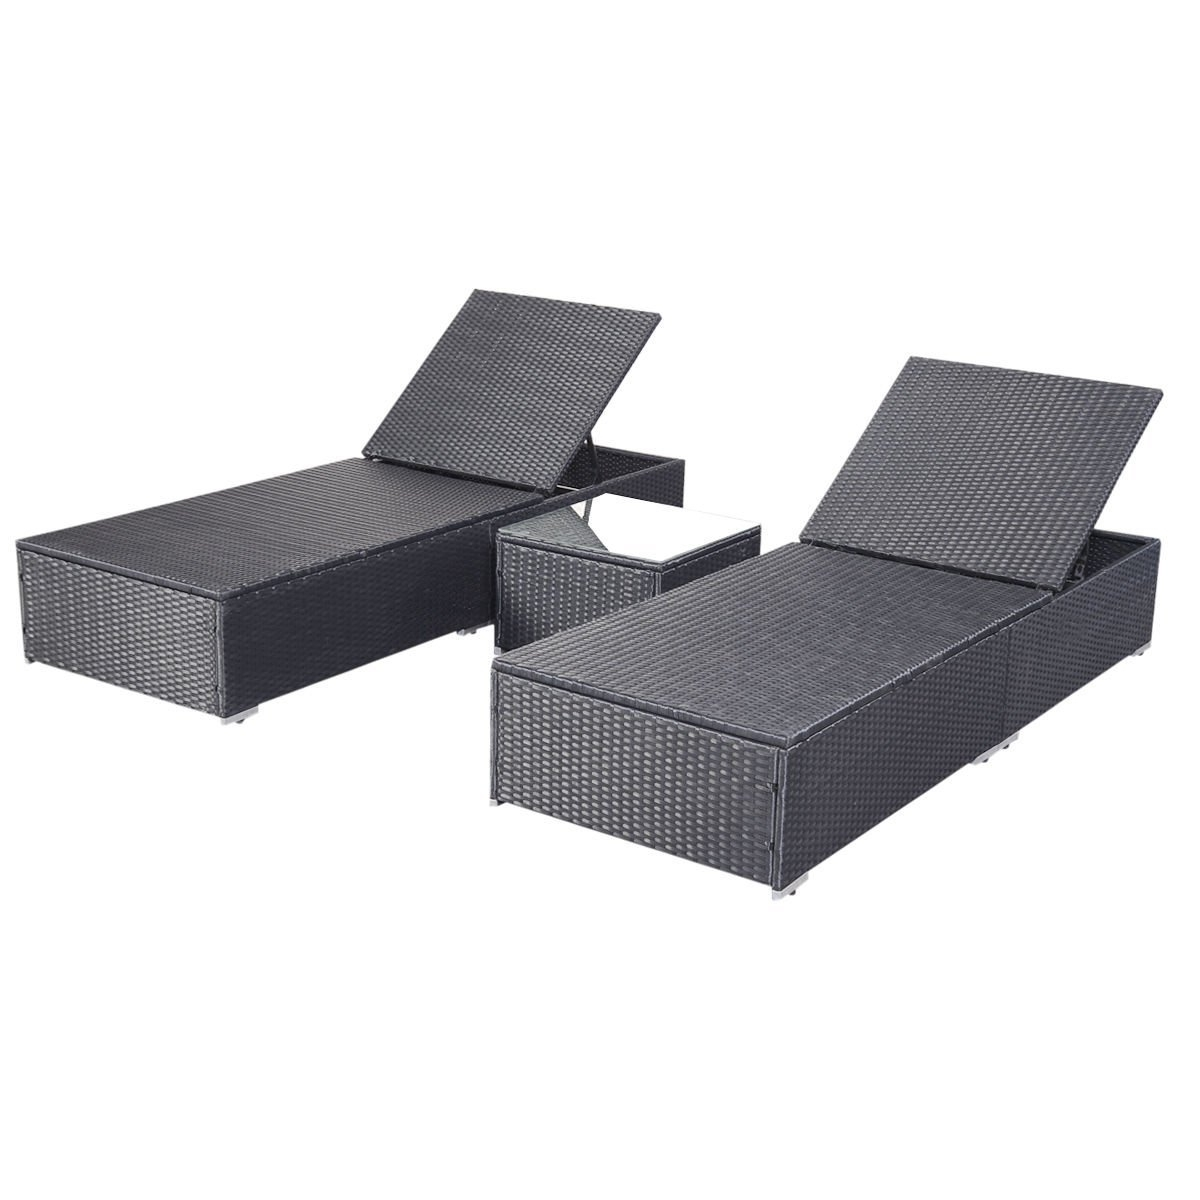 Rattan Chaise Lounges Pertaining To Fashionable Amazon : Giantex 3 Piece Wicker Rattan Chaise Lounge Chair Set (View 15 of 15)